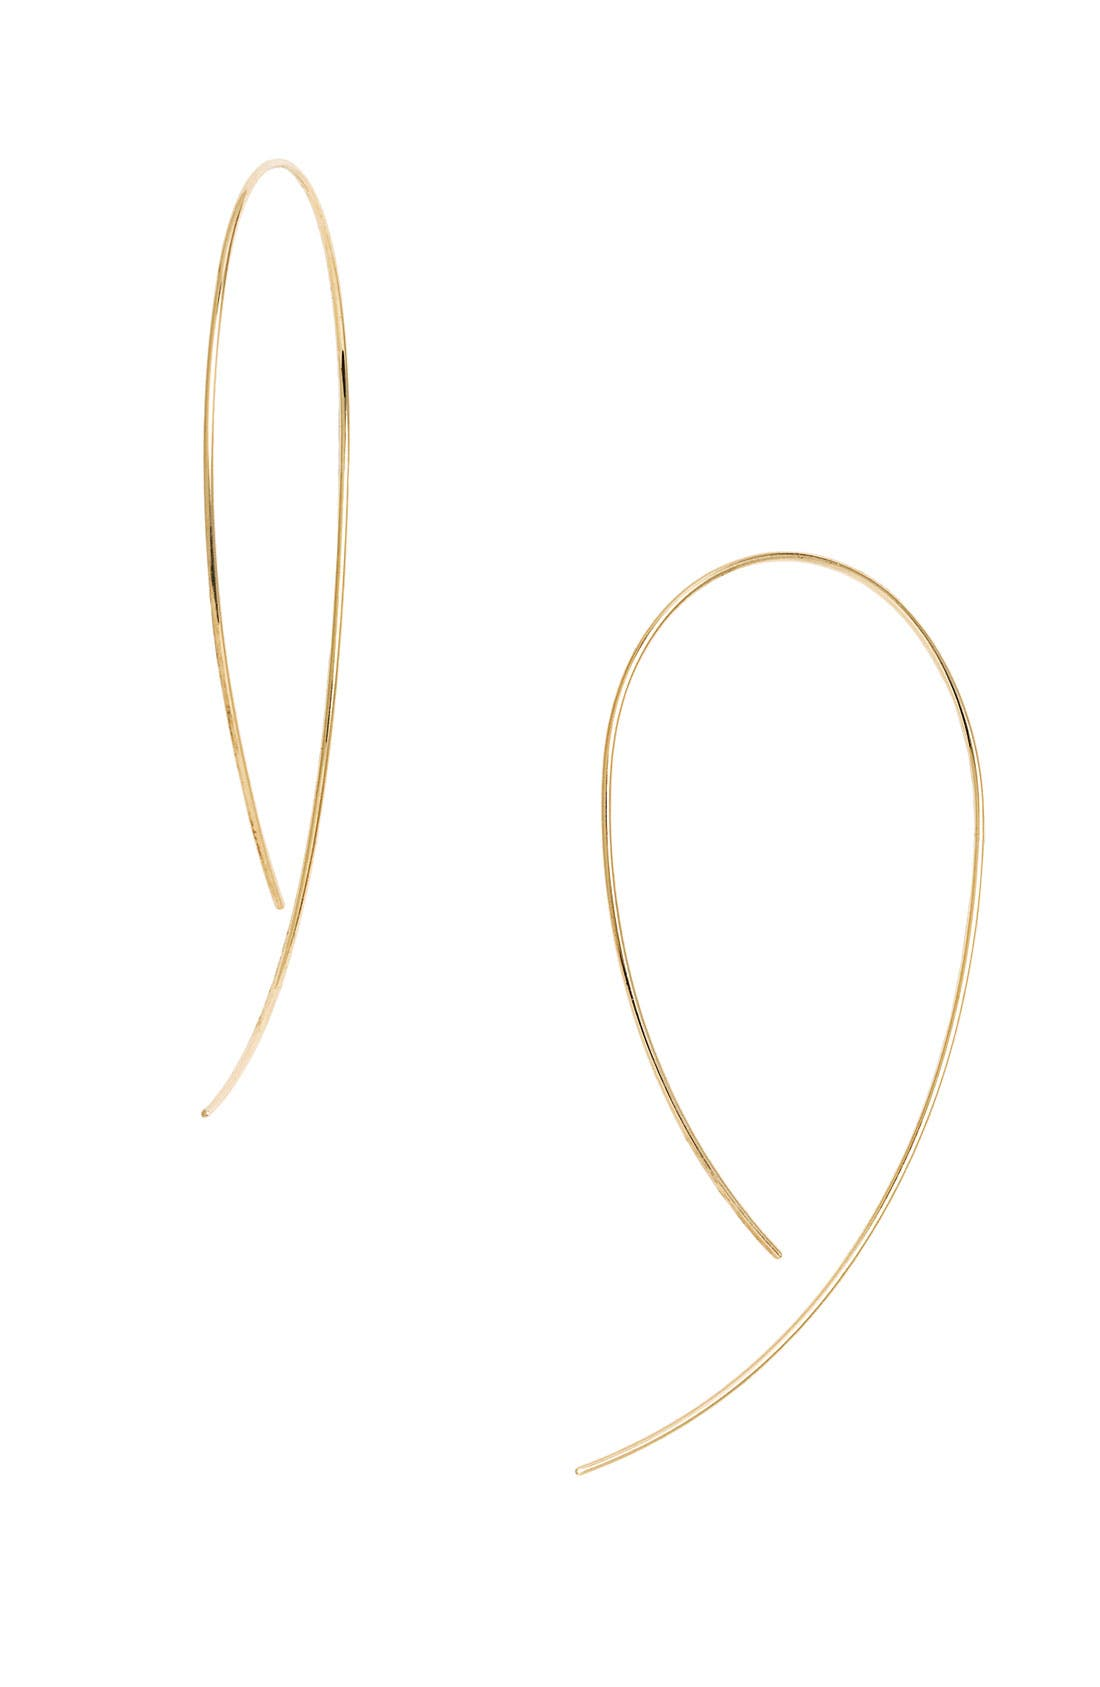 Lana Jewelry 'Hooked on Hoop' Earrings